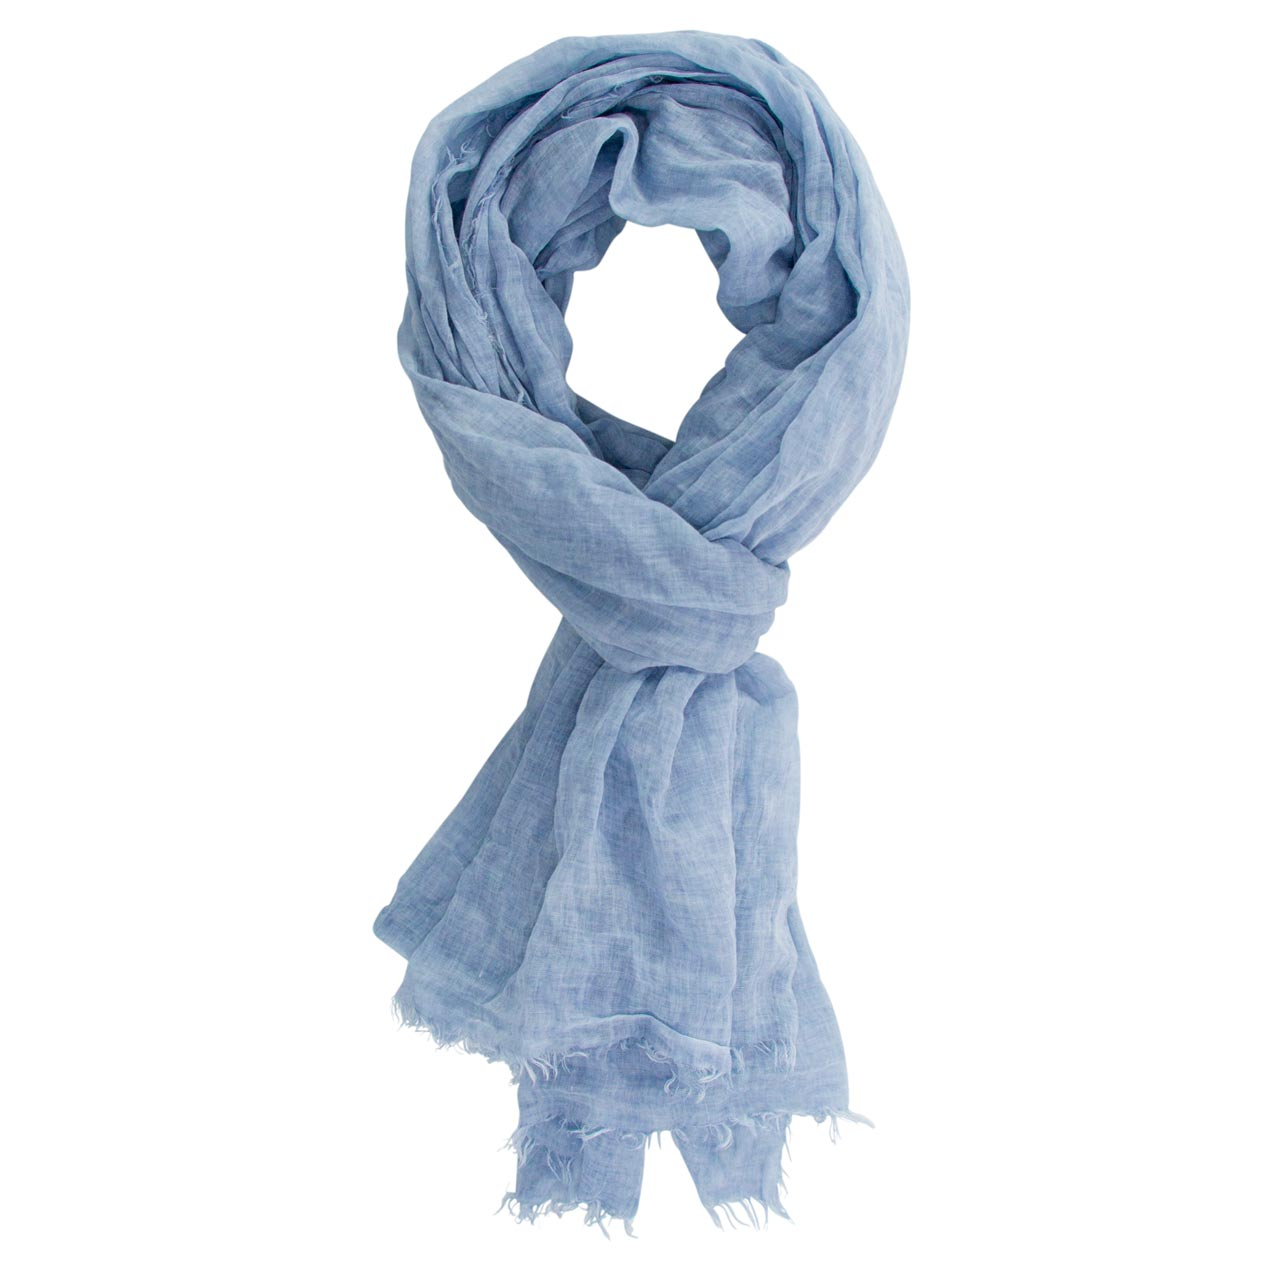 Cotton Scarf Pastel Blue | The Design Gift Shop